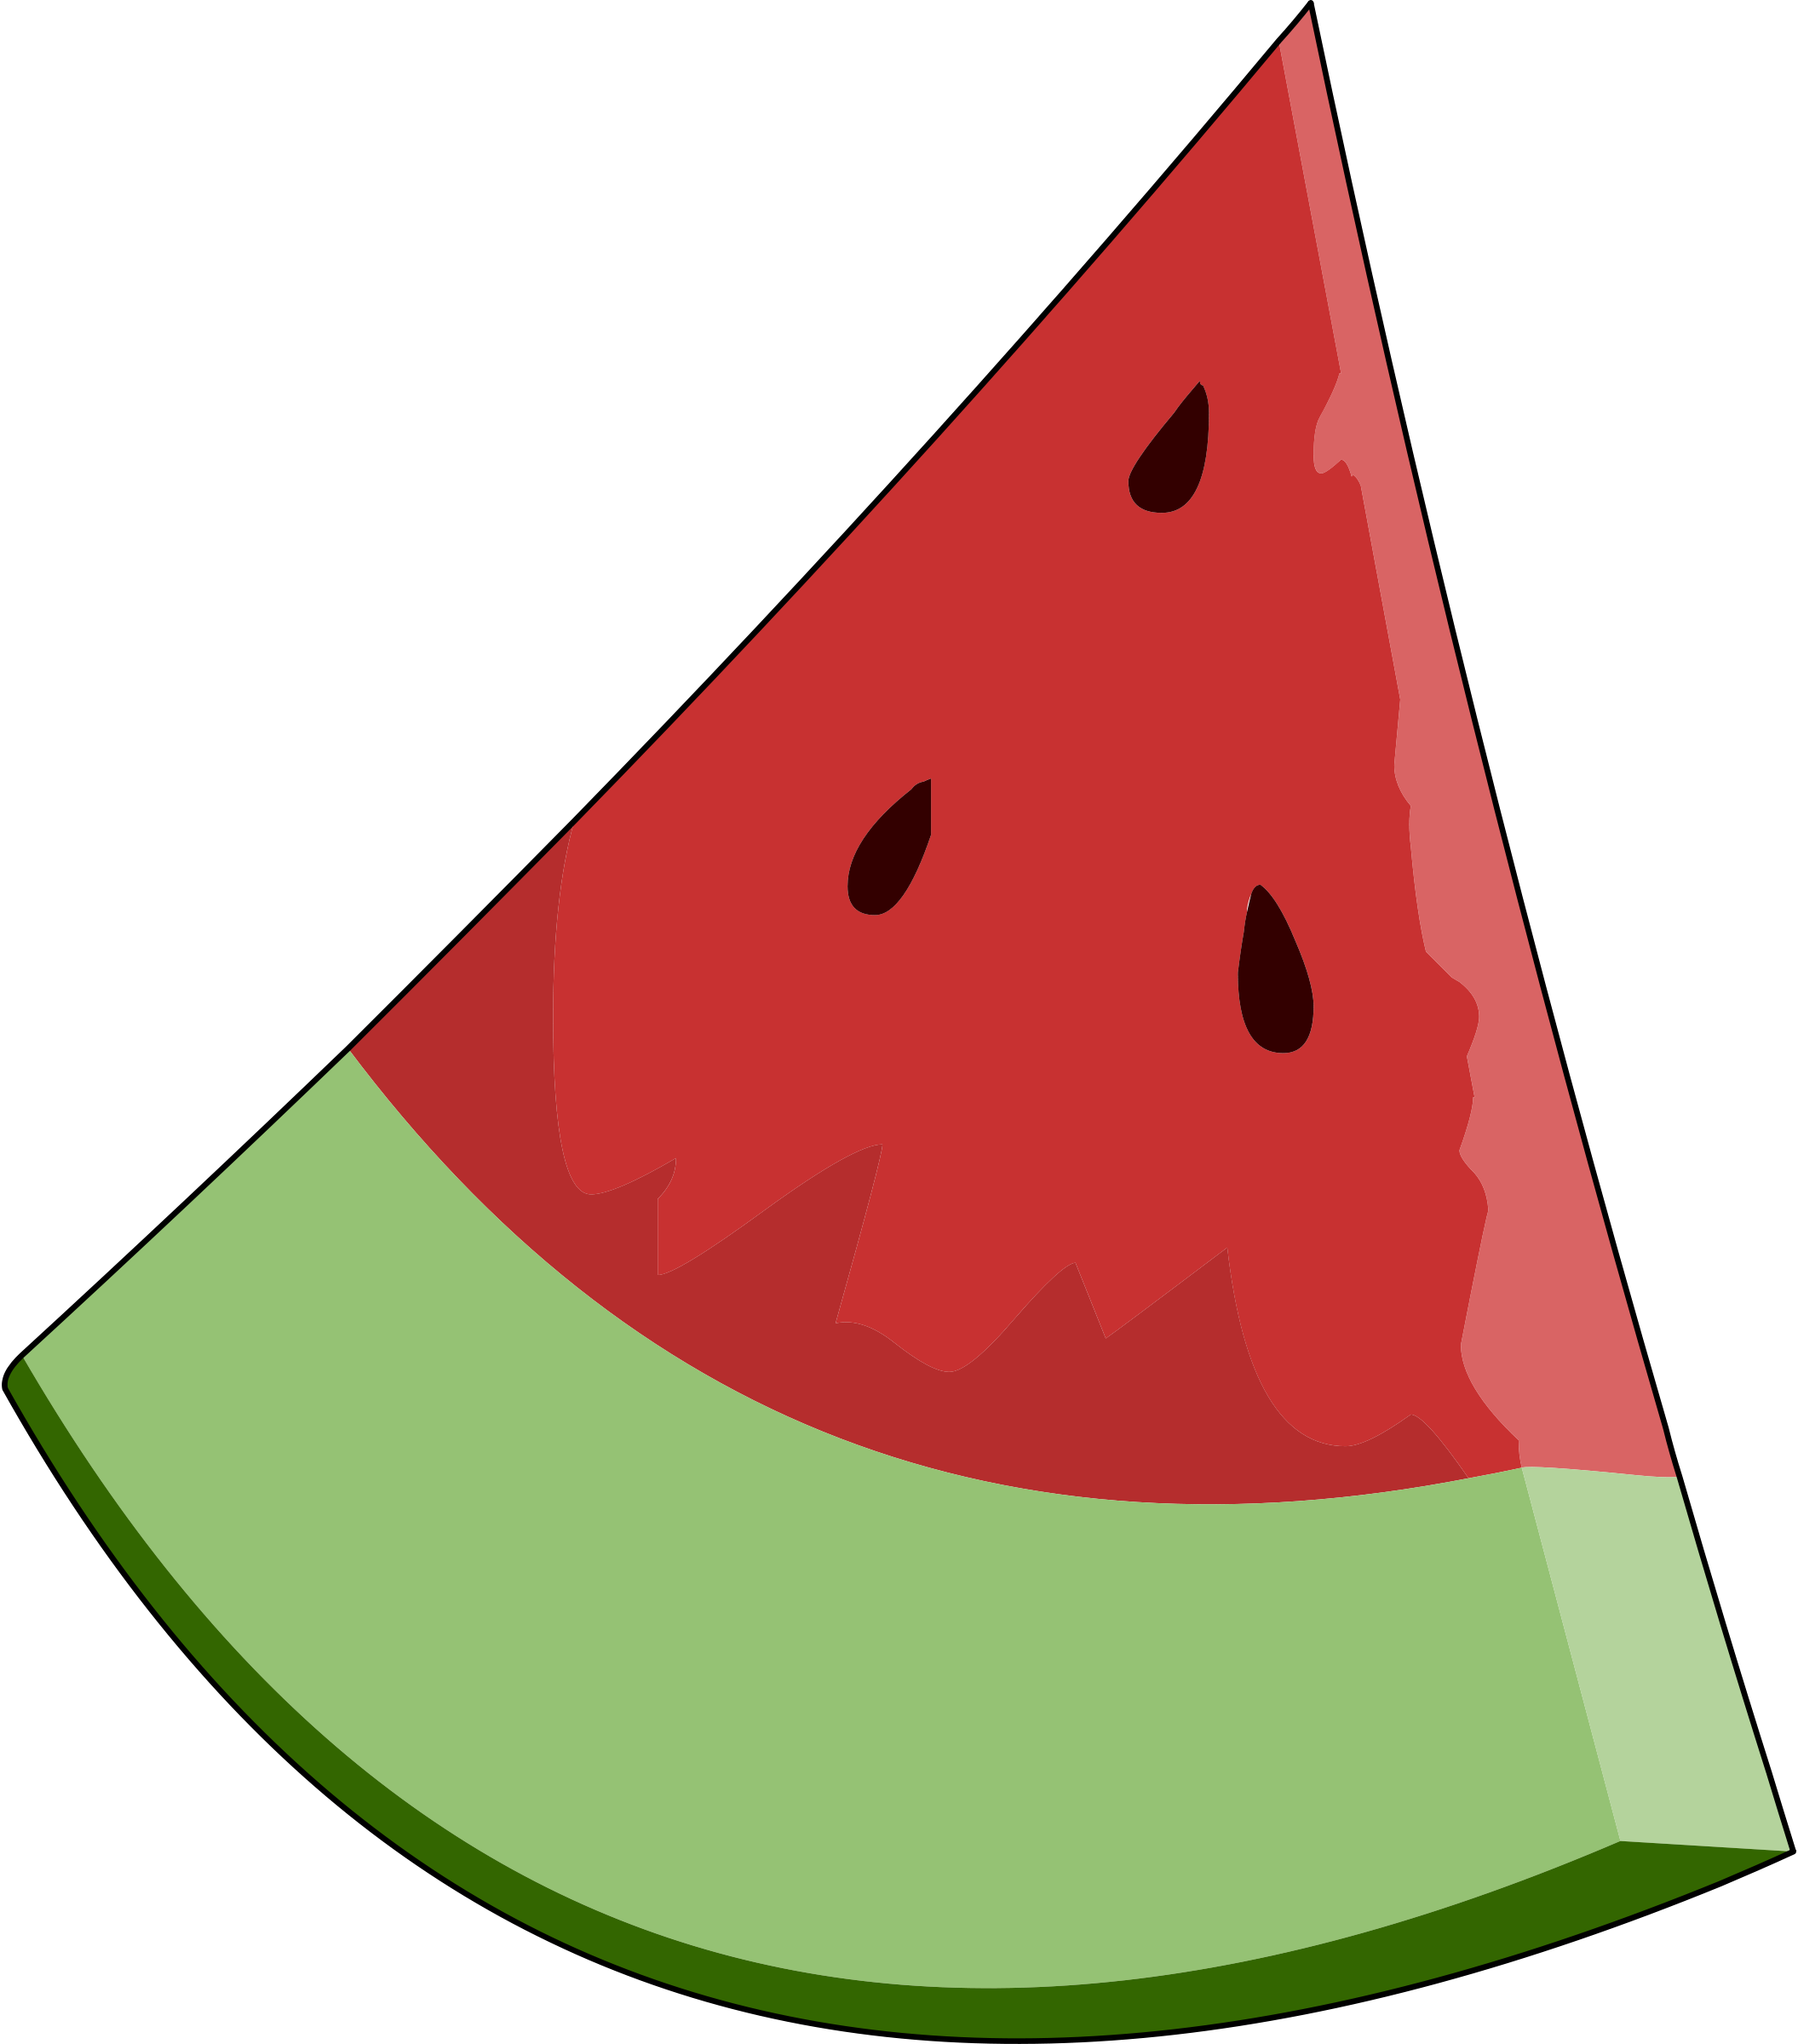 Clip art of a watermelon clipart cliparts for you clipartcow